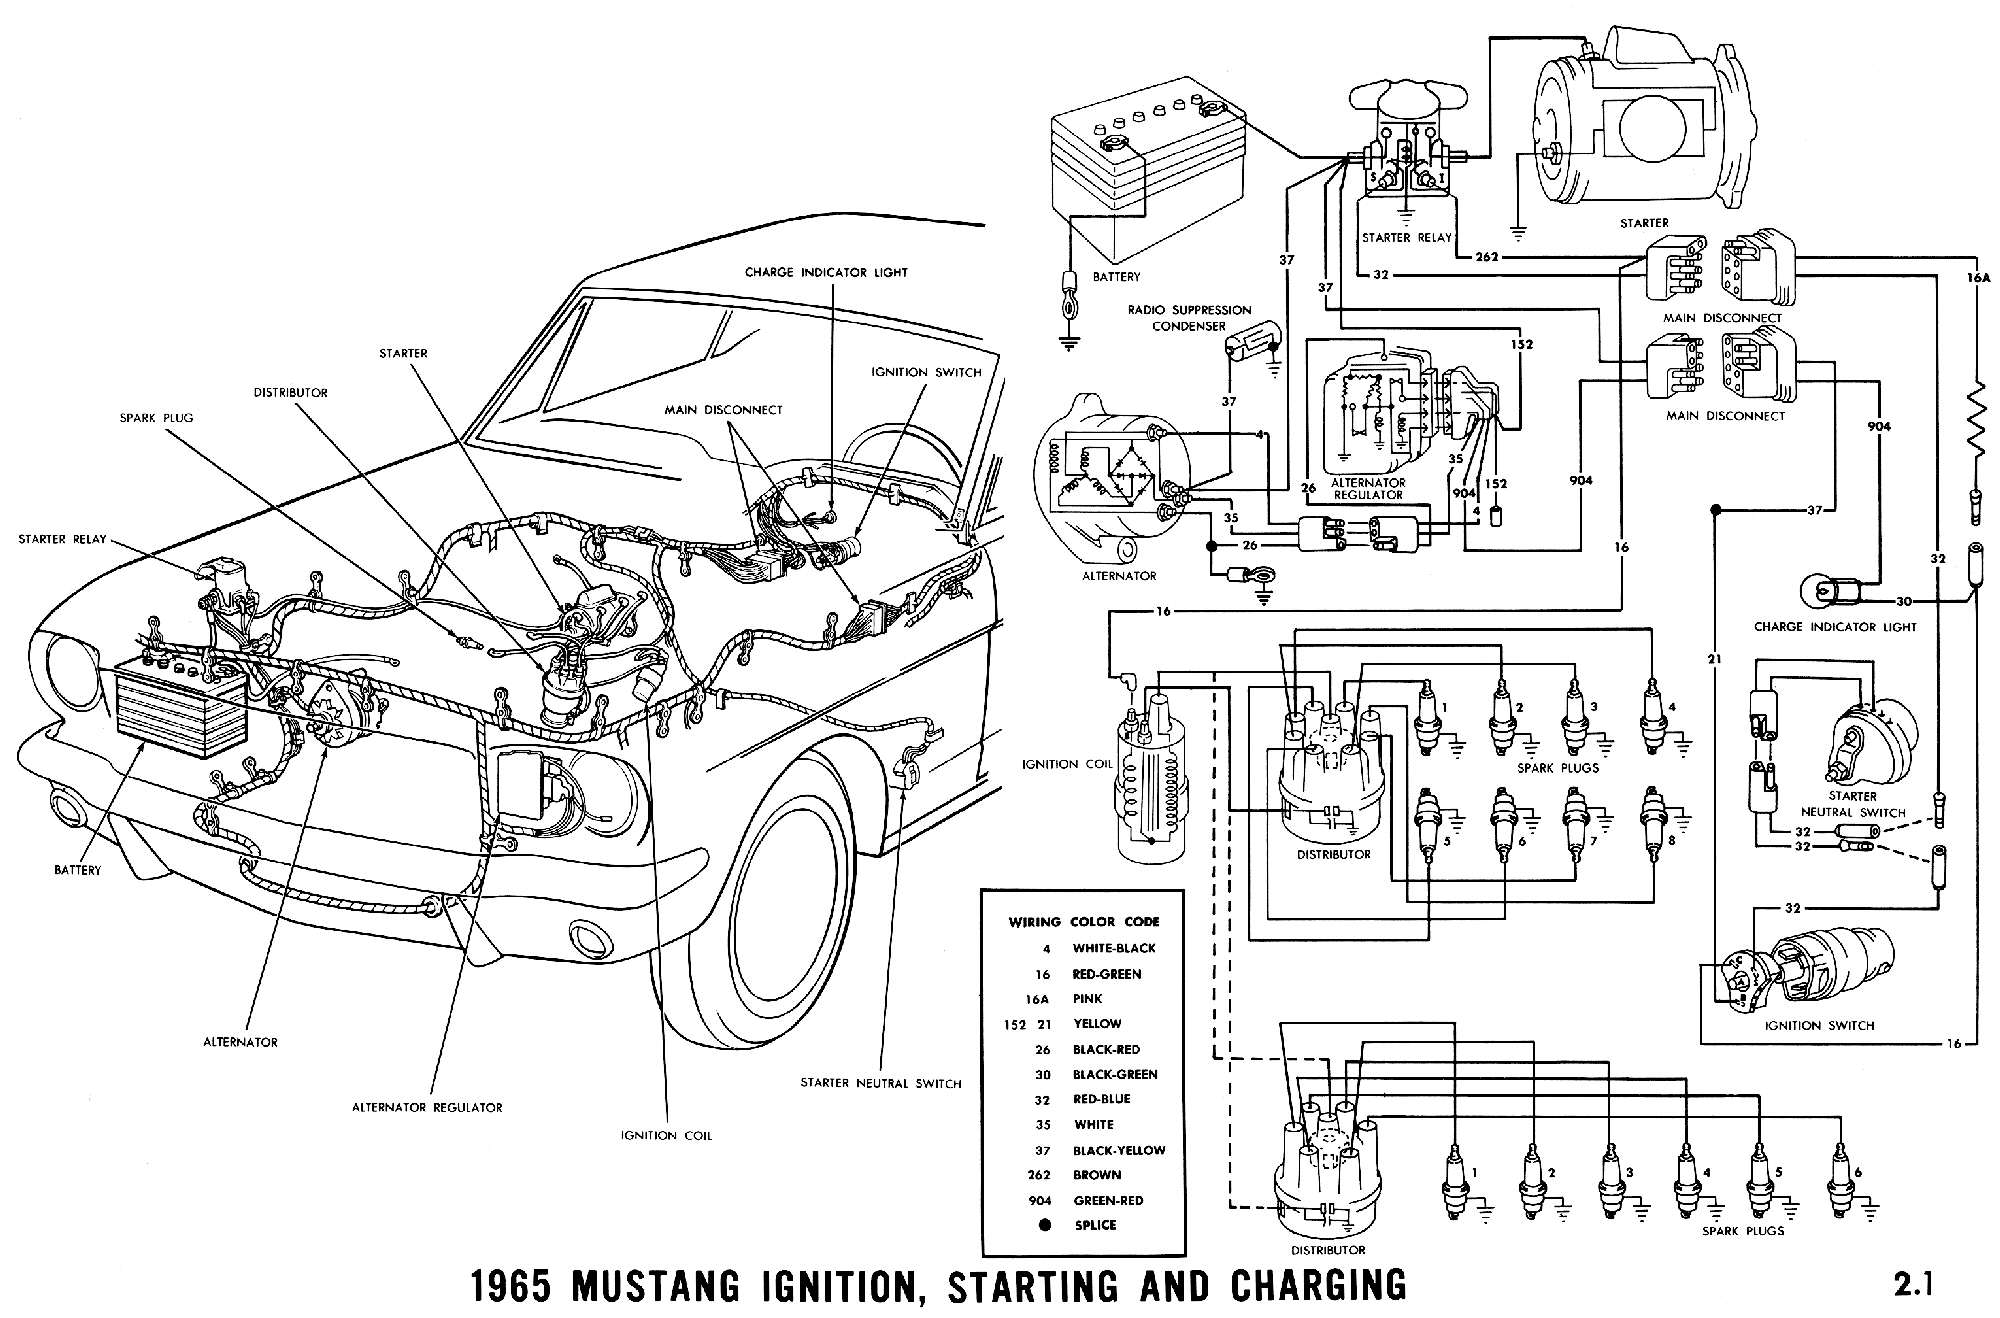 1965 Mustang Wiring Diagrams Average Joe Restoration Traffic Light Diagram In Addition Flasher Relay Circuit Charging Pictorial And Schematic